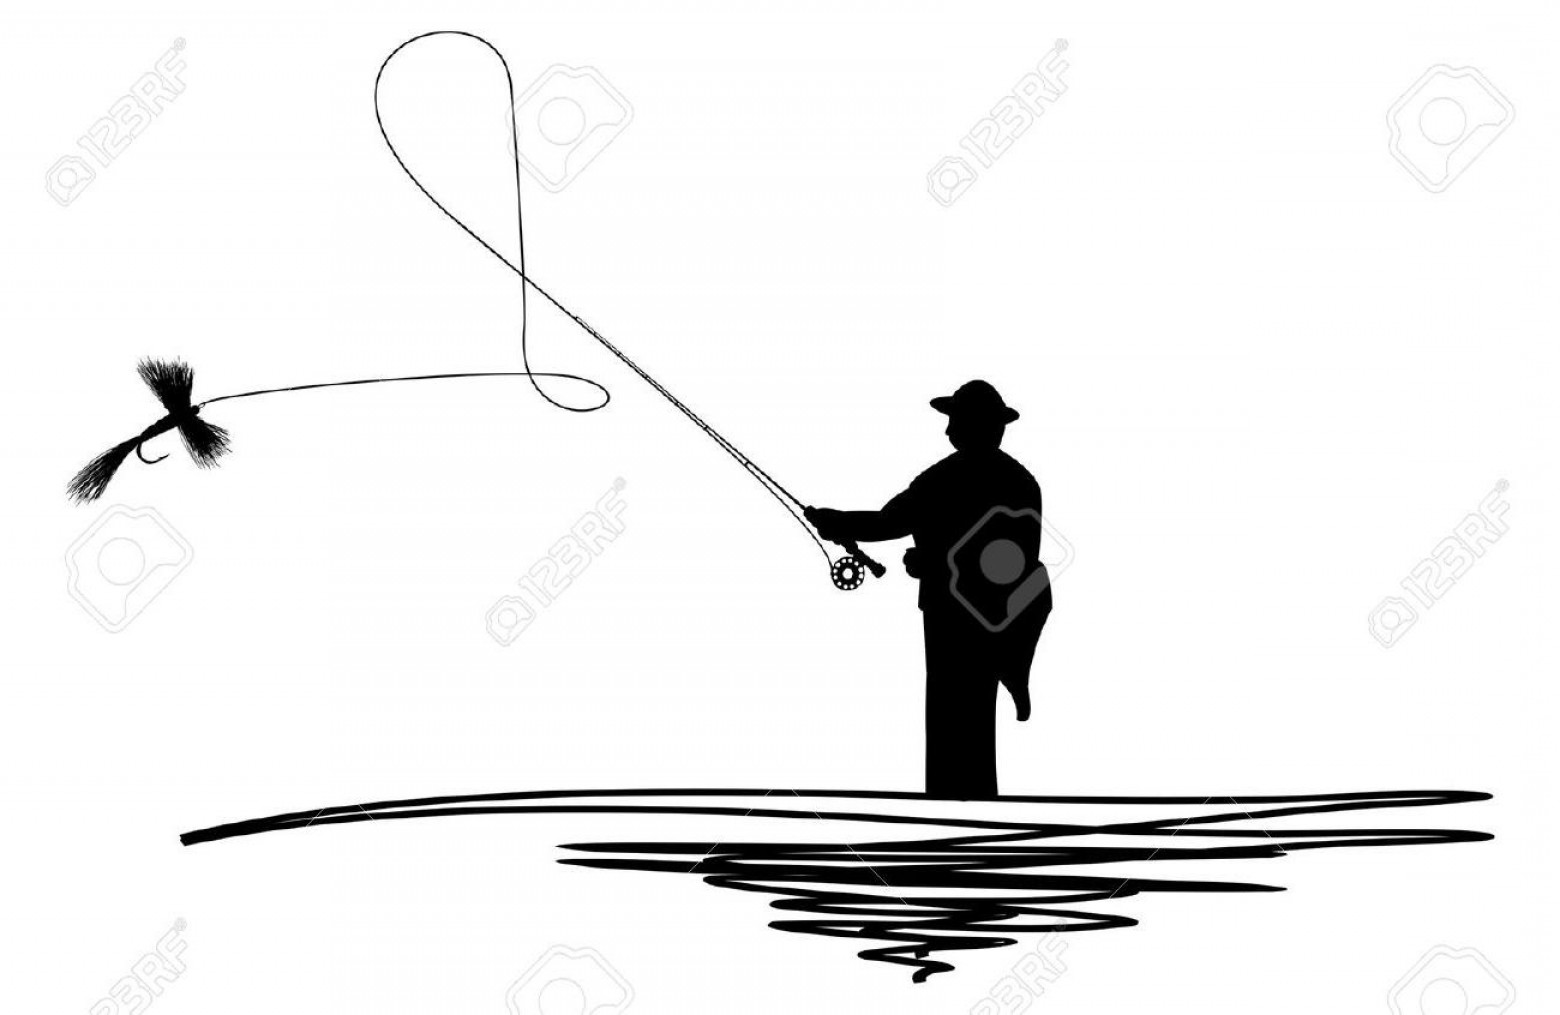 1560x1015 Top Fly Fishing Casting Silhouette Library Sohadacouri